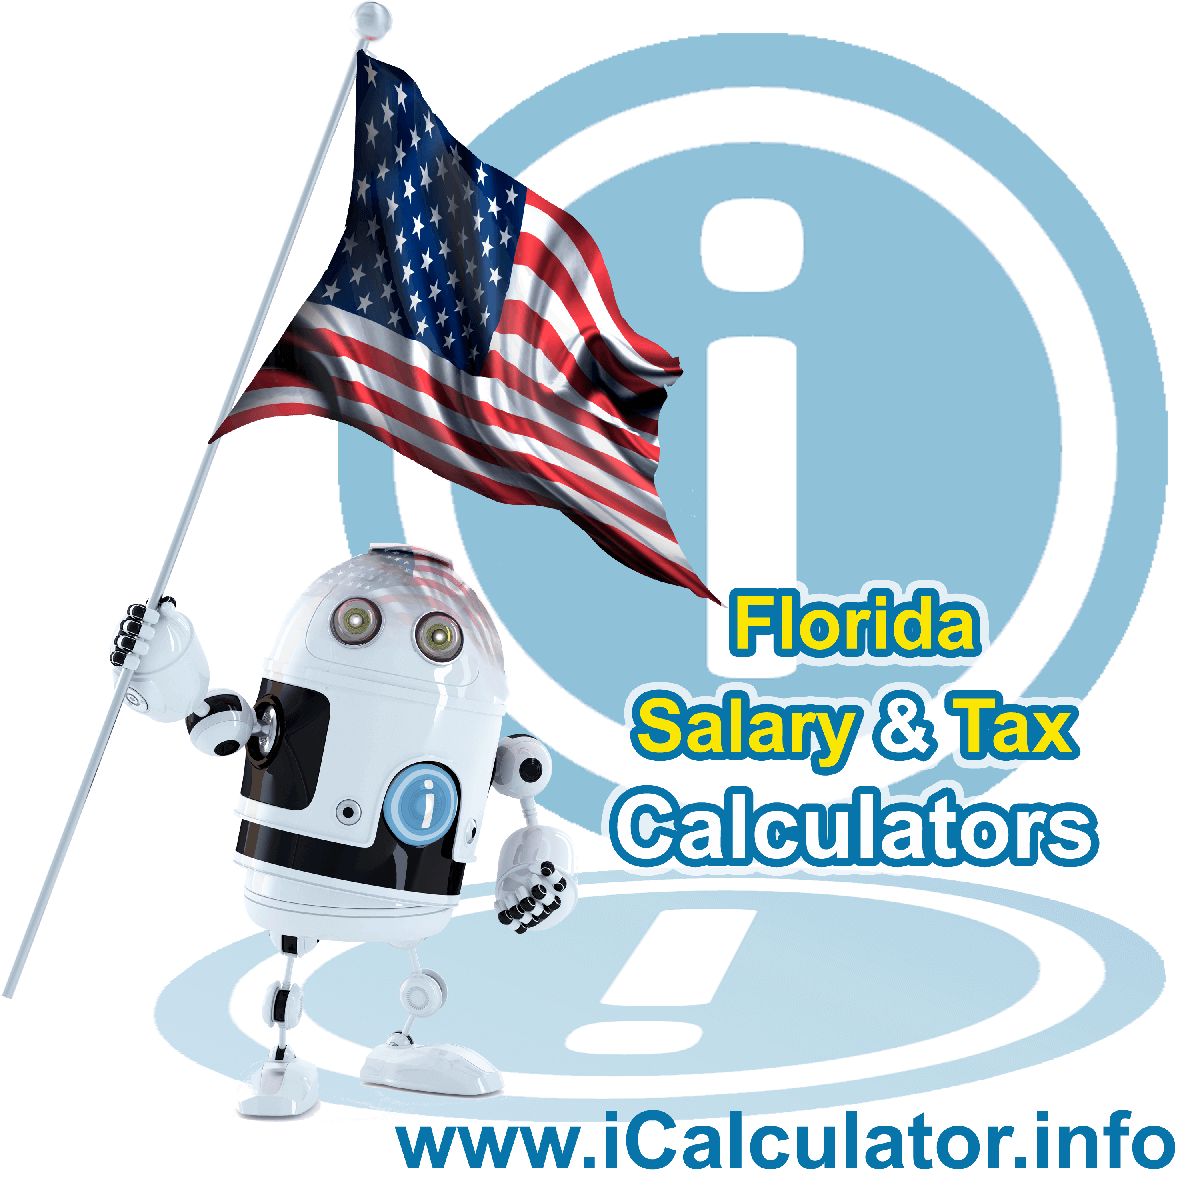 Florida Salary Calculator 2020 | iCalculator | The Florida Salary Calculator allows you to quickly calculate your salary after tax including Florida State Tax, Federal State Tax, Medicare Deductions, Social Security, Capital Gains and other income tax and salary deductions complete with supporting Florida state tax tables